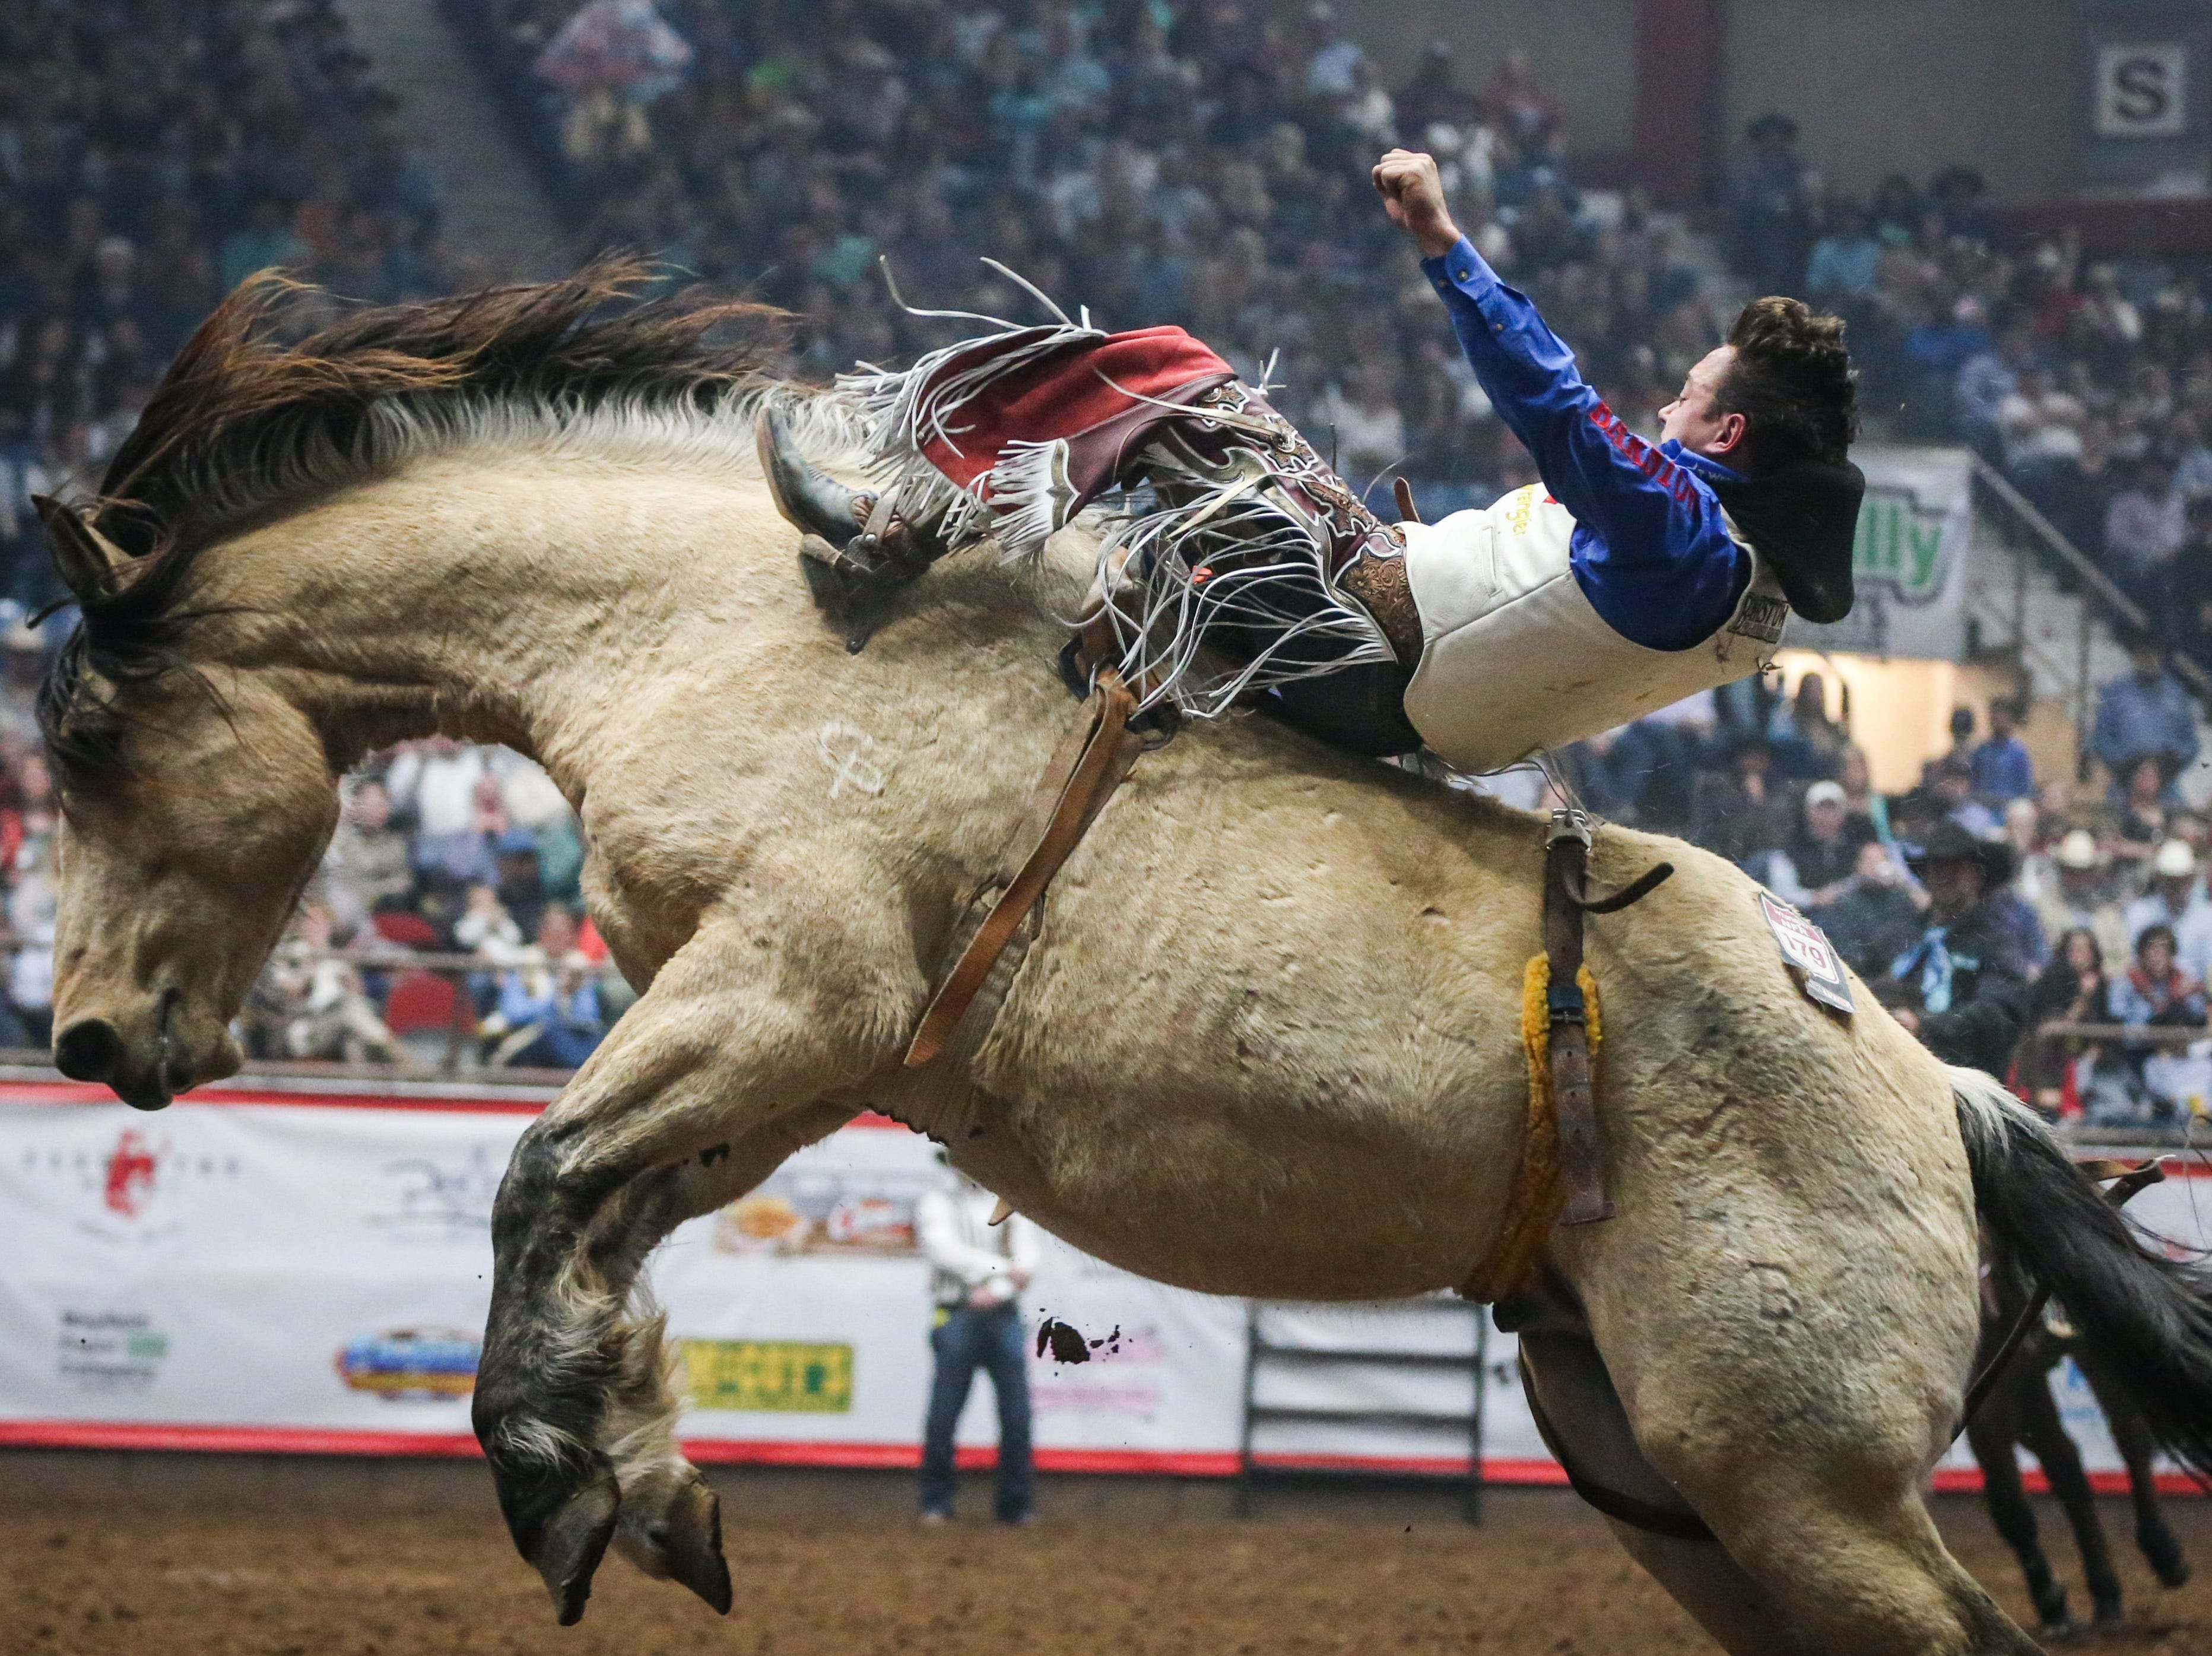 Clayton Biglow rides bareback on Uncapped during finals of the San Angelo Stock Show & Rodeo Friday, Feb. 15, 2019, at Foster Communications Coliseum.